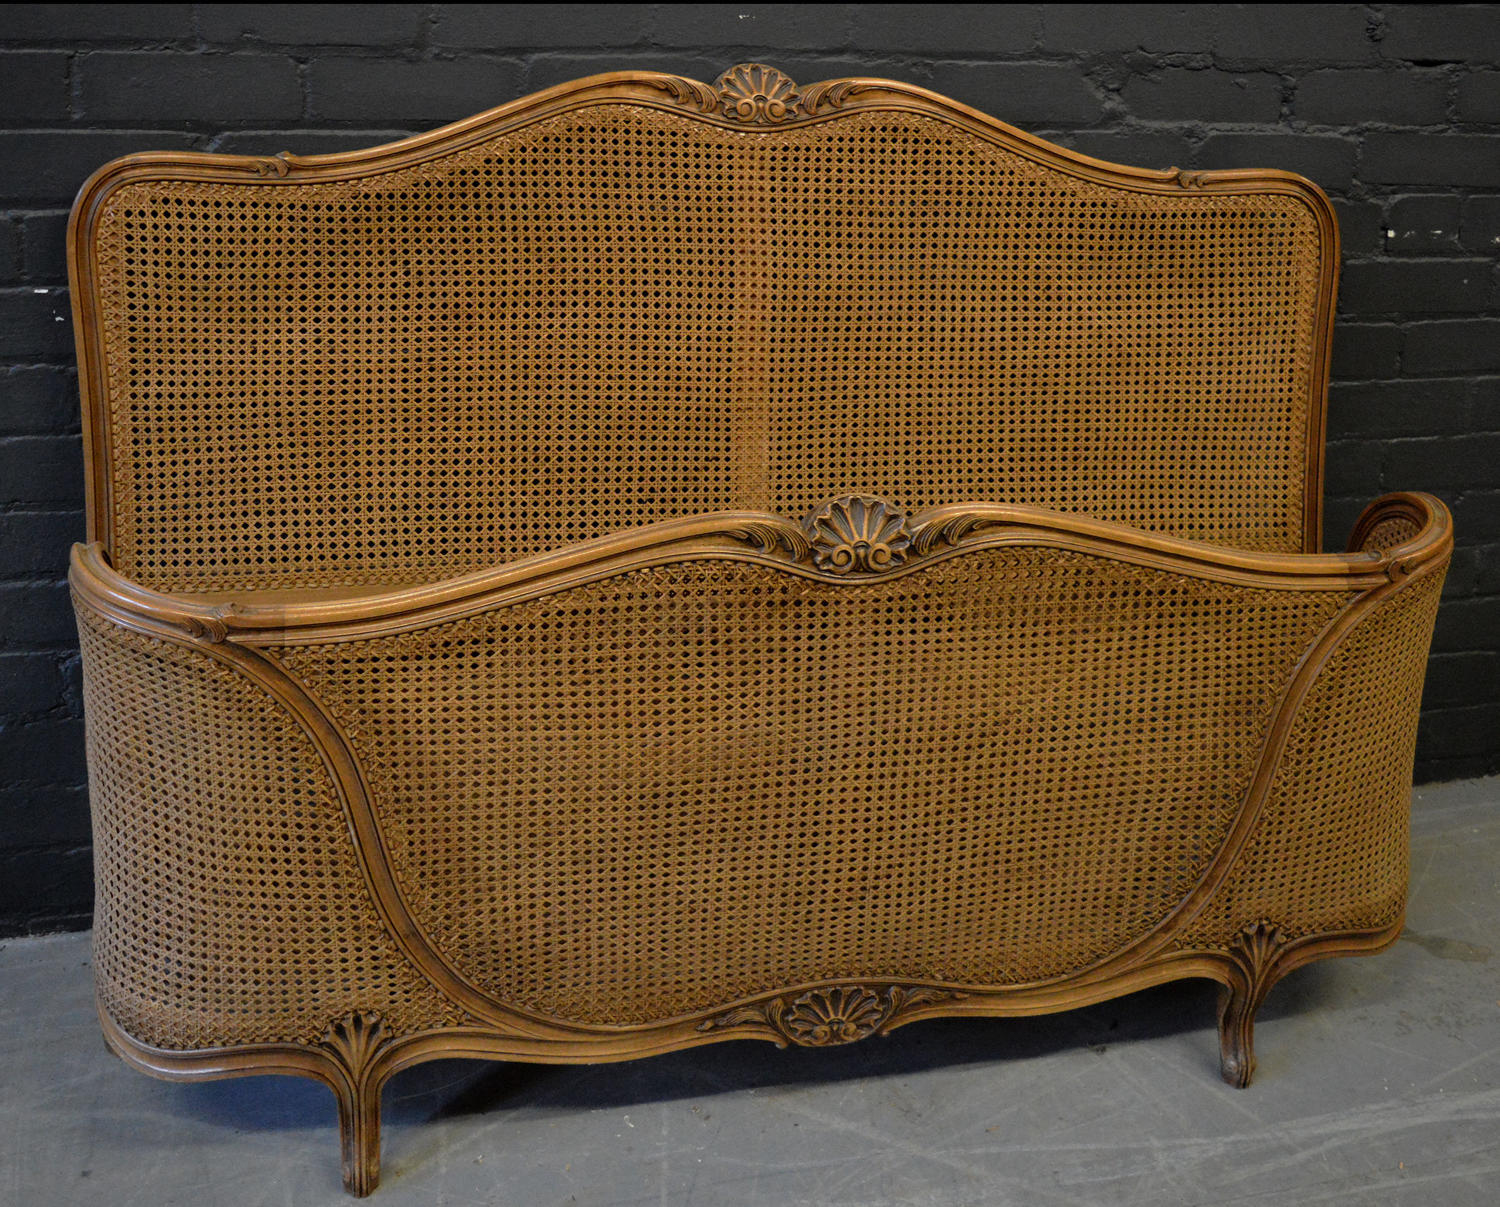 Louis XV style double cane bedstead